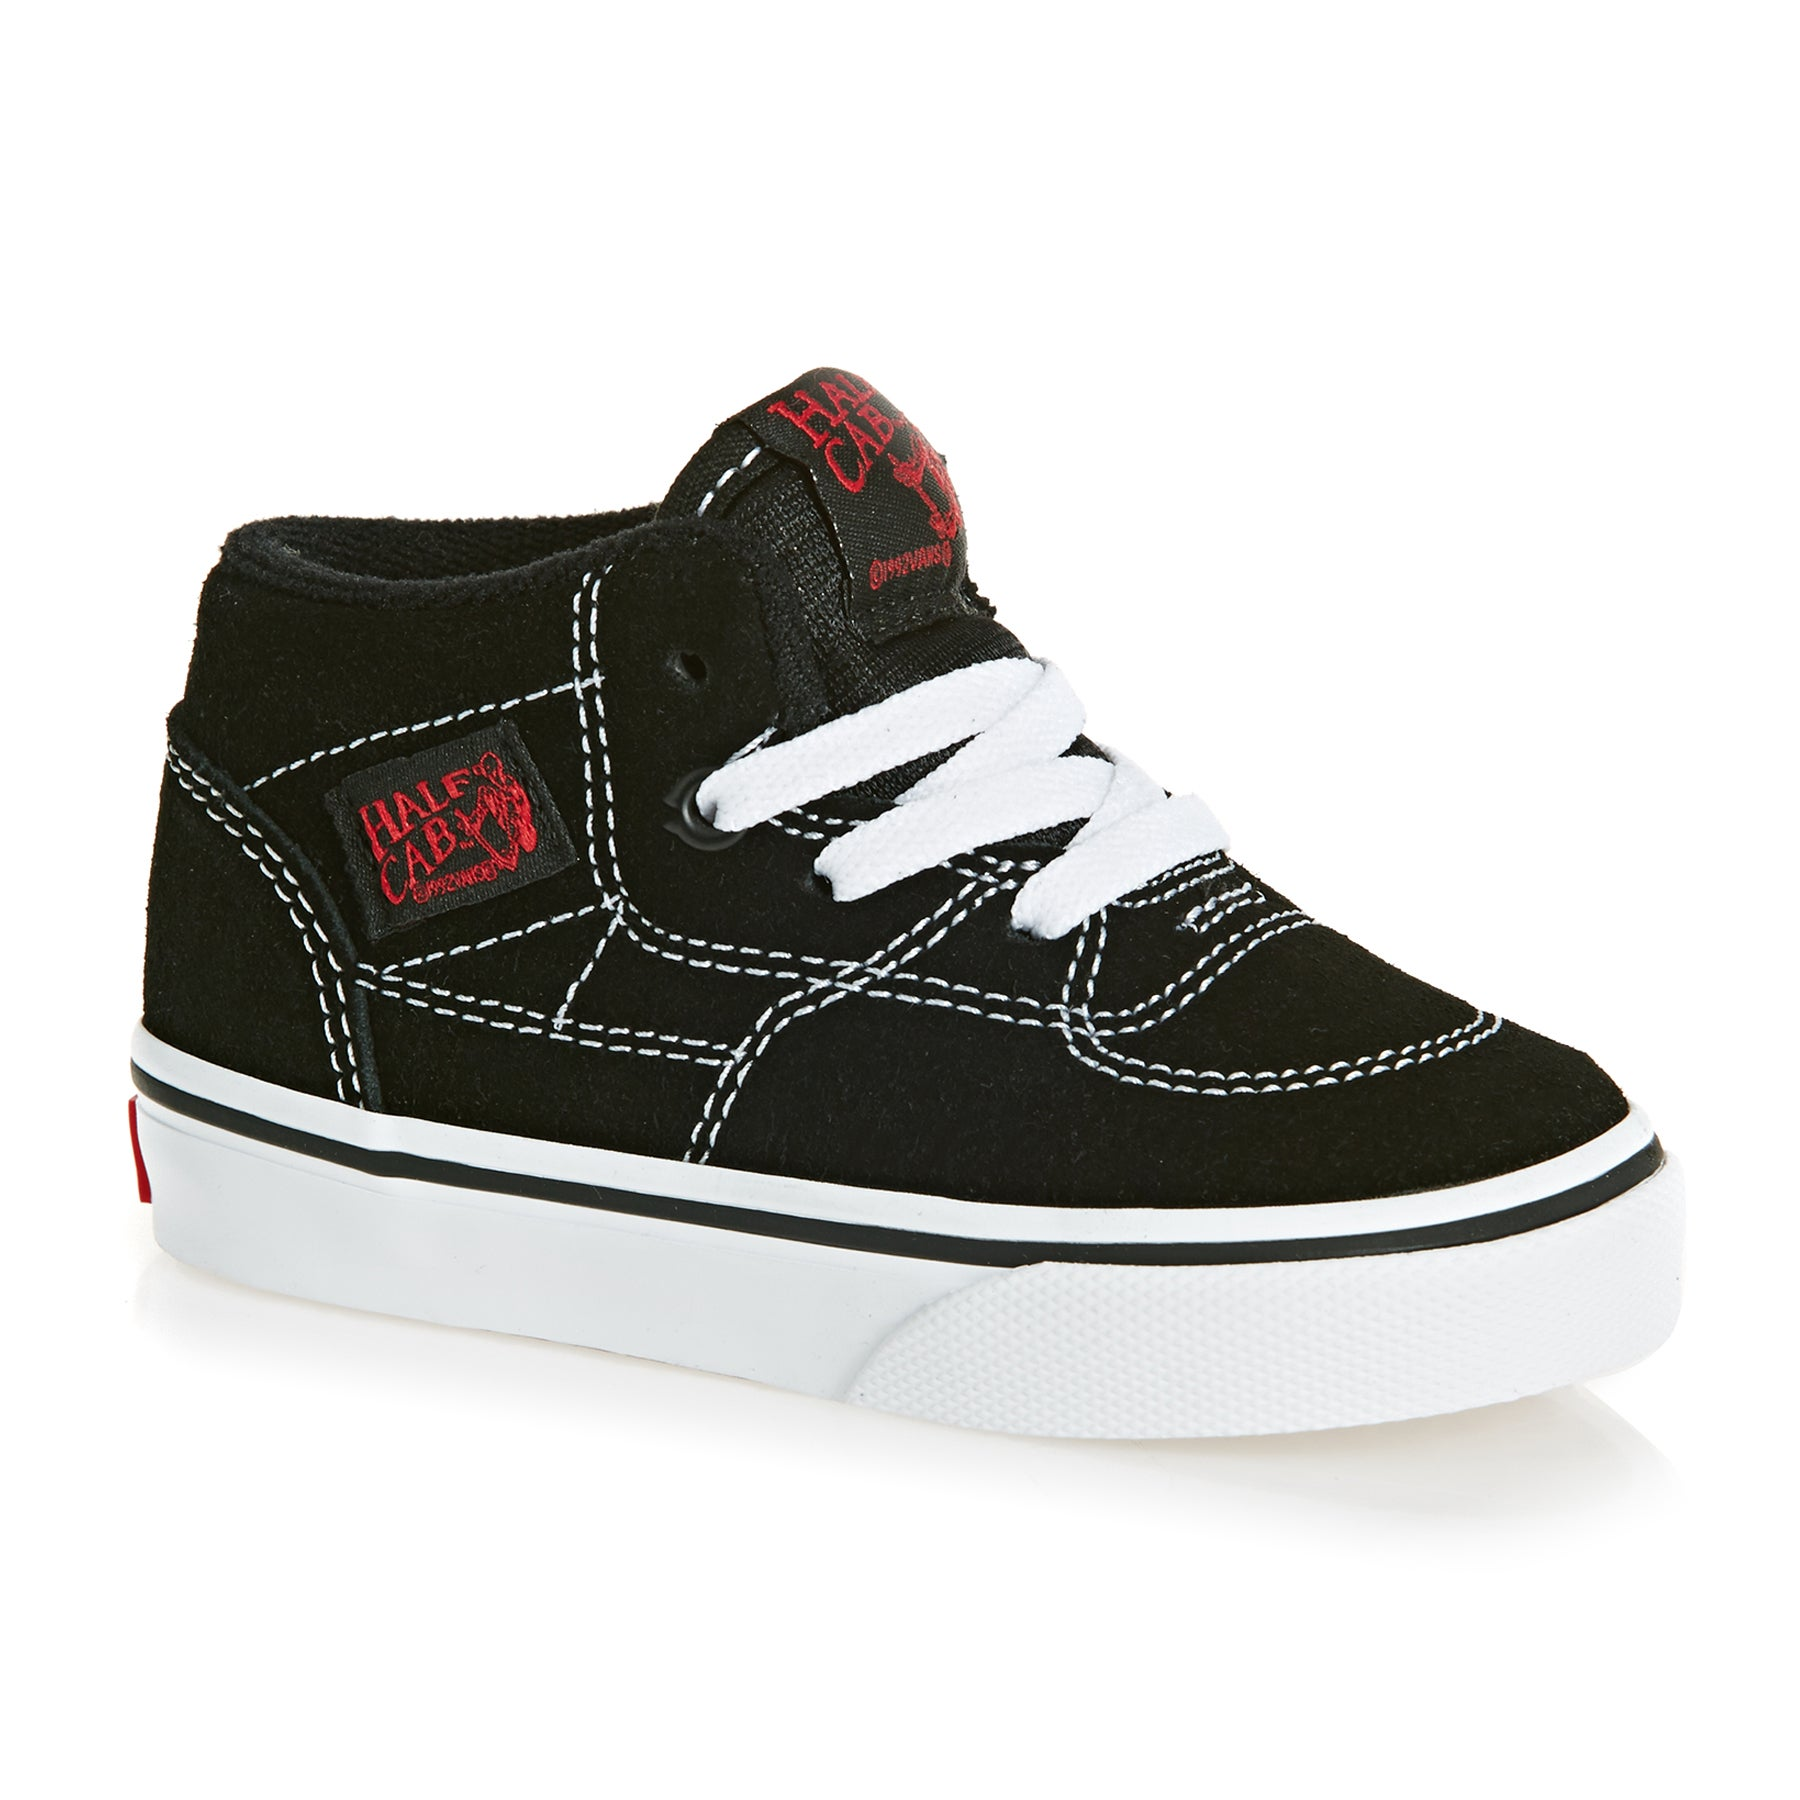 4d5a55b5e7 Vans Half Cab Kids Toddler Shoes available from Surfdome